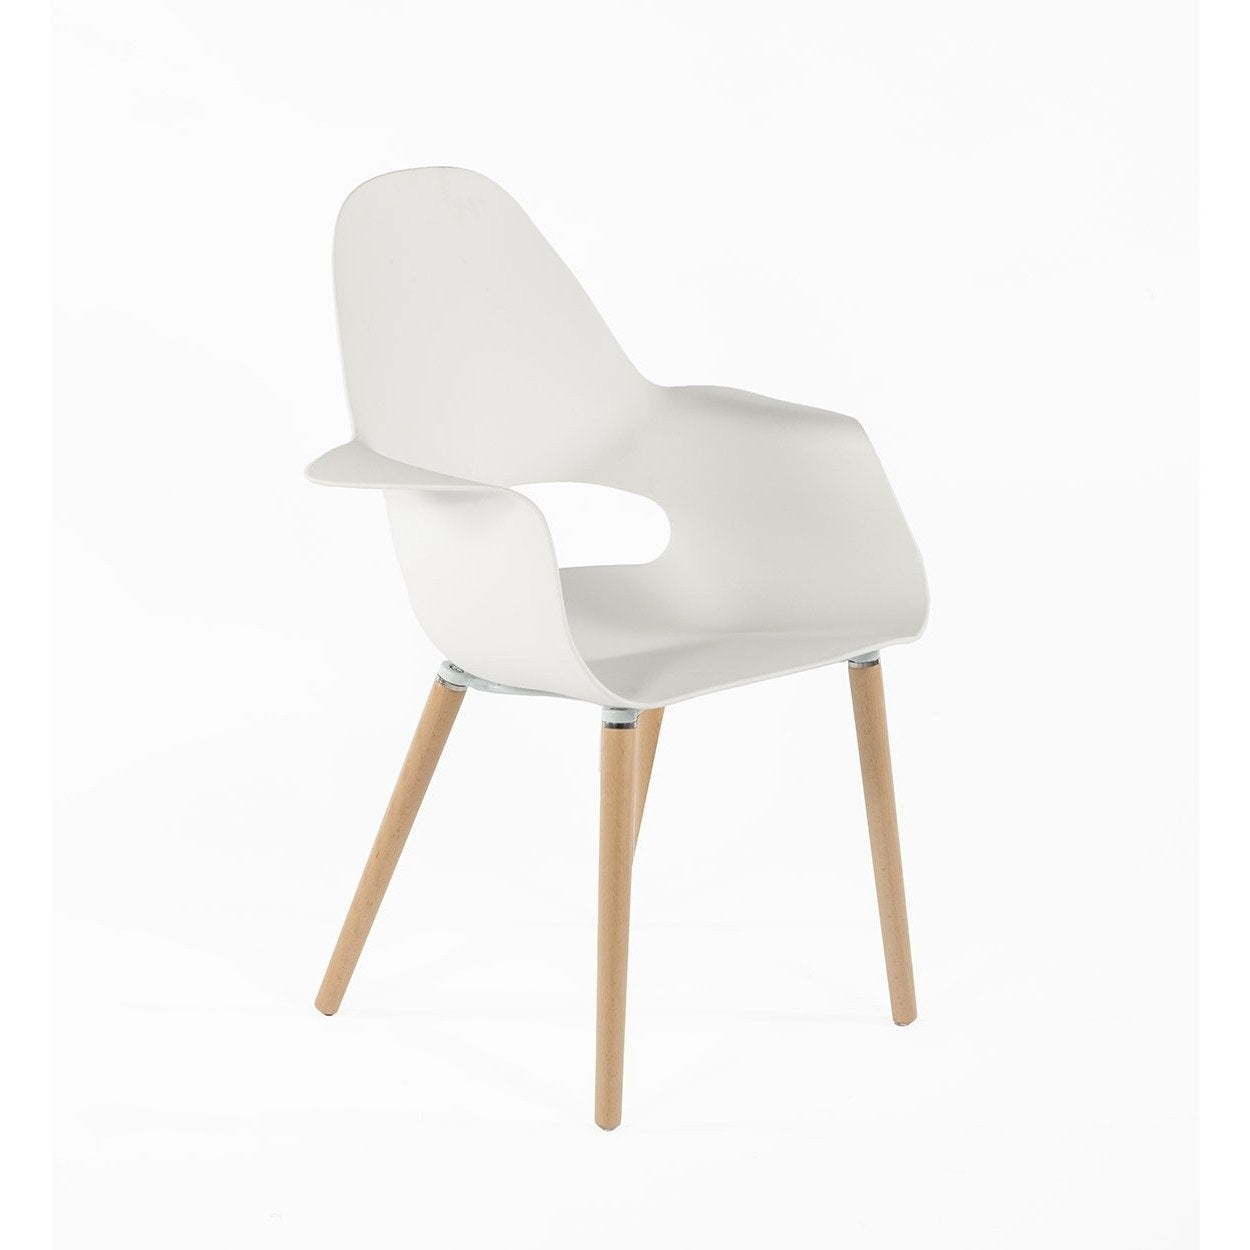 [FD195WHT] The Organic Chair SALE